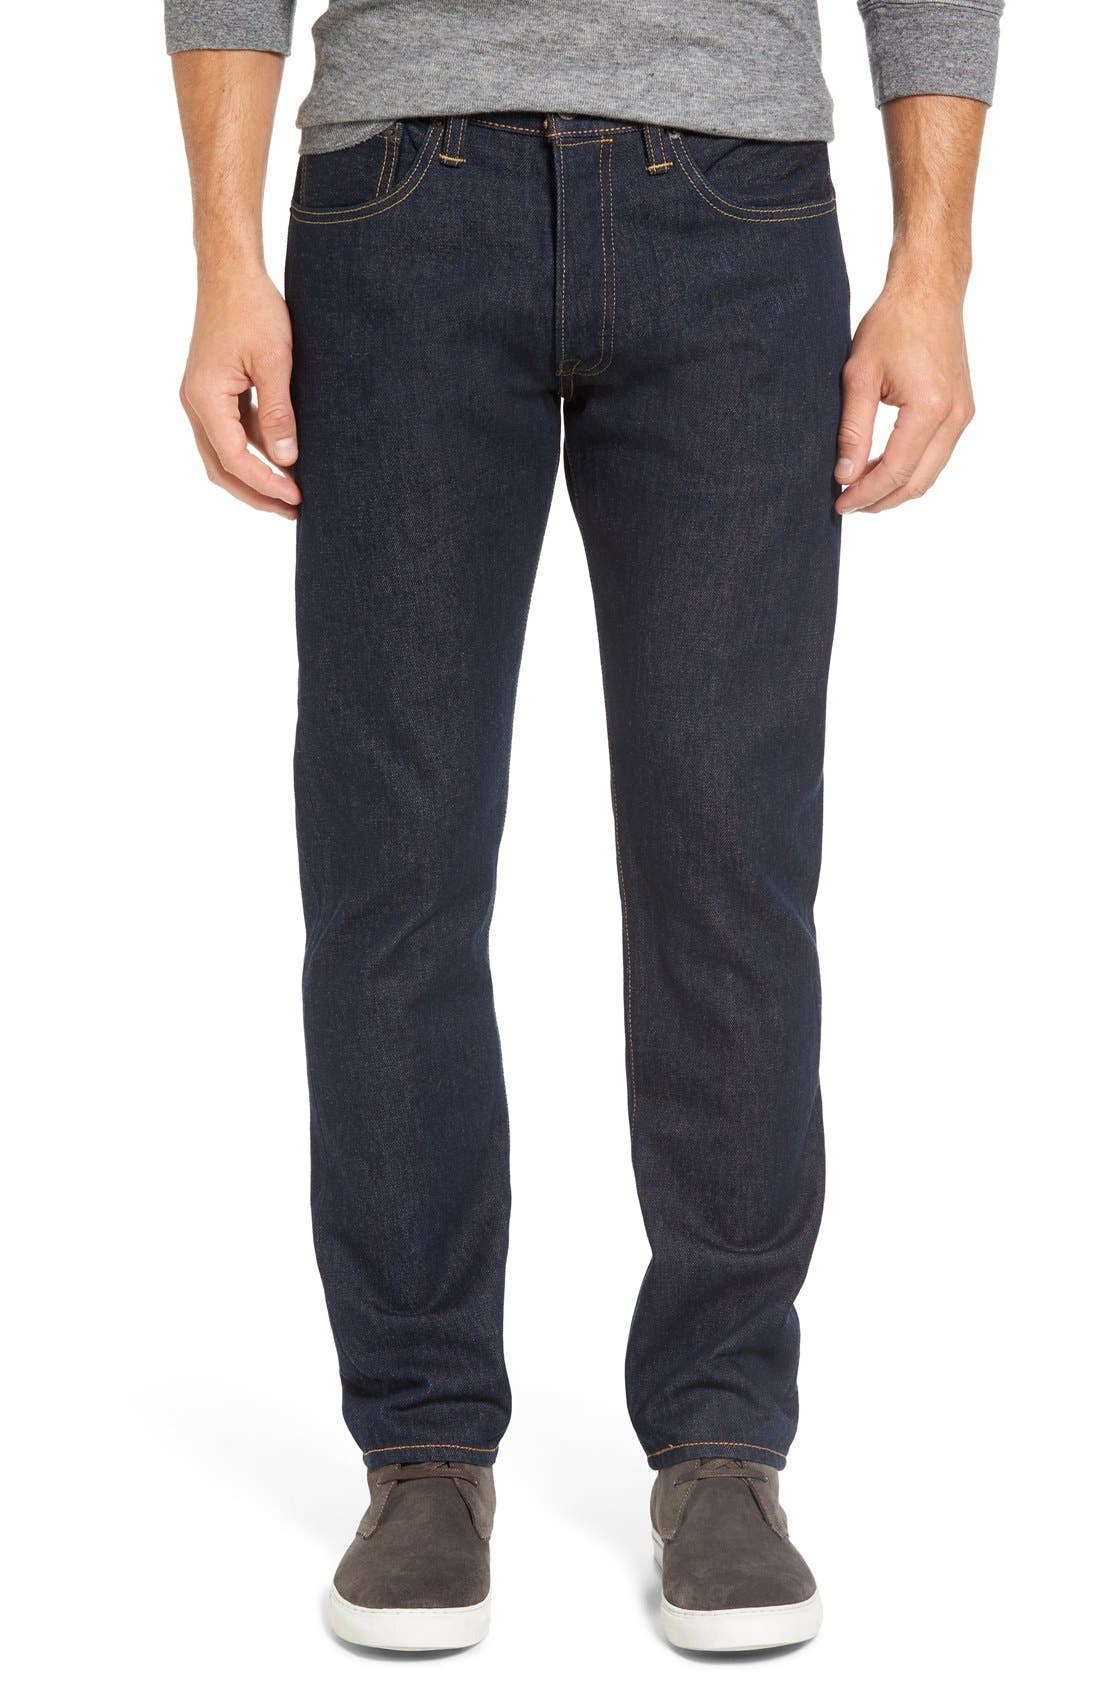 Alternate Image 1 Selected - Levi's® 501® CT Slim Fit Jeans (Noten) (Regular & Tall)